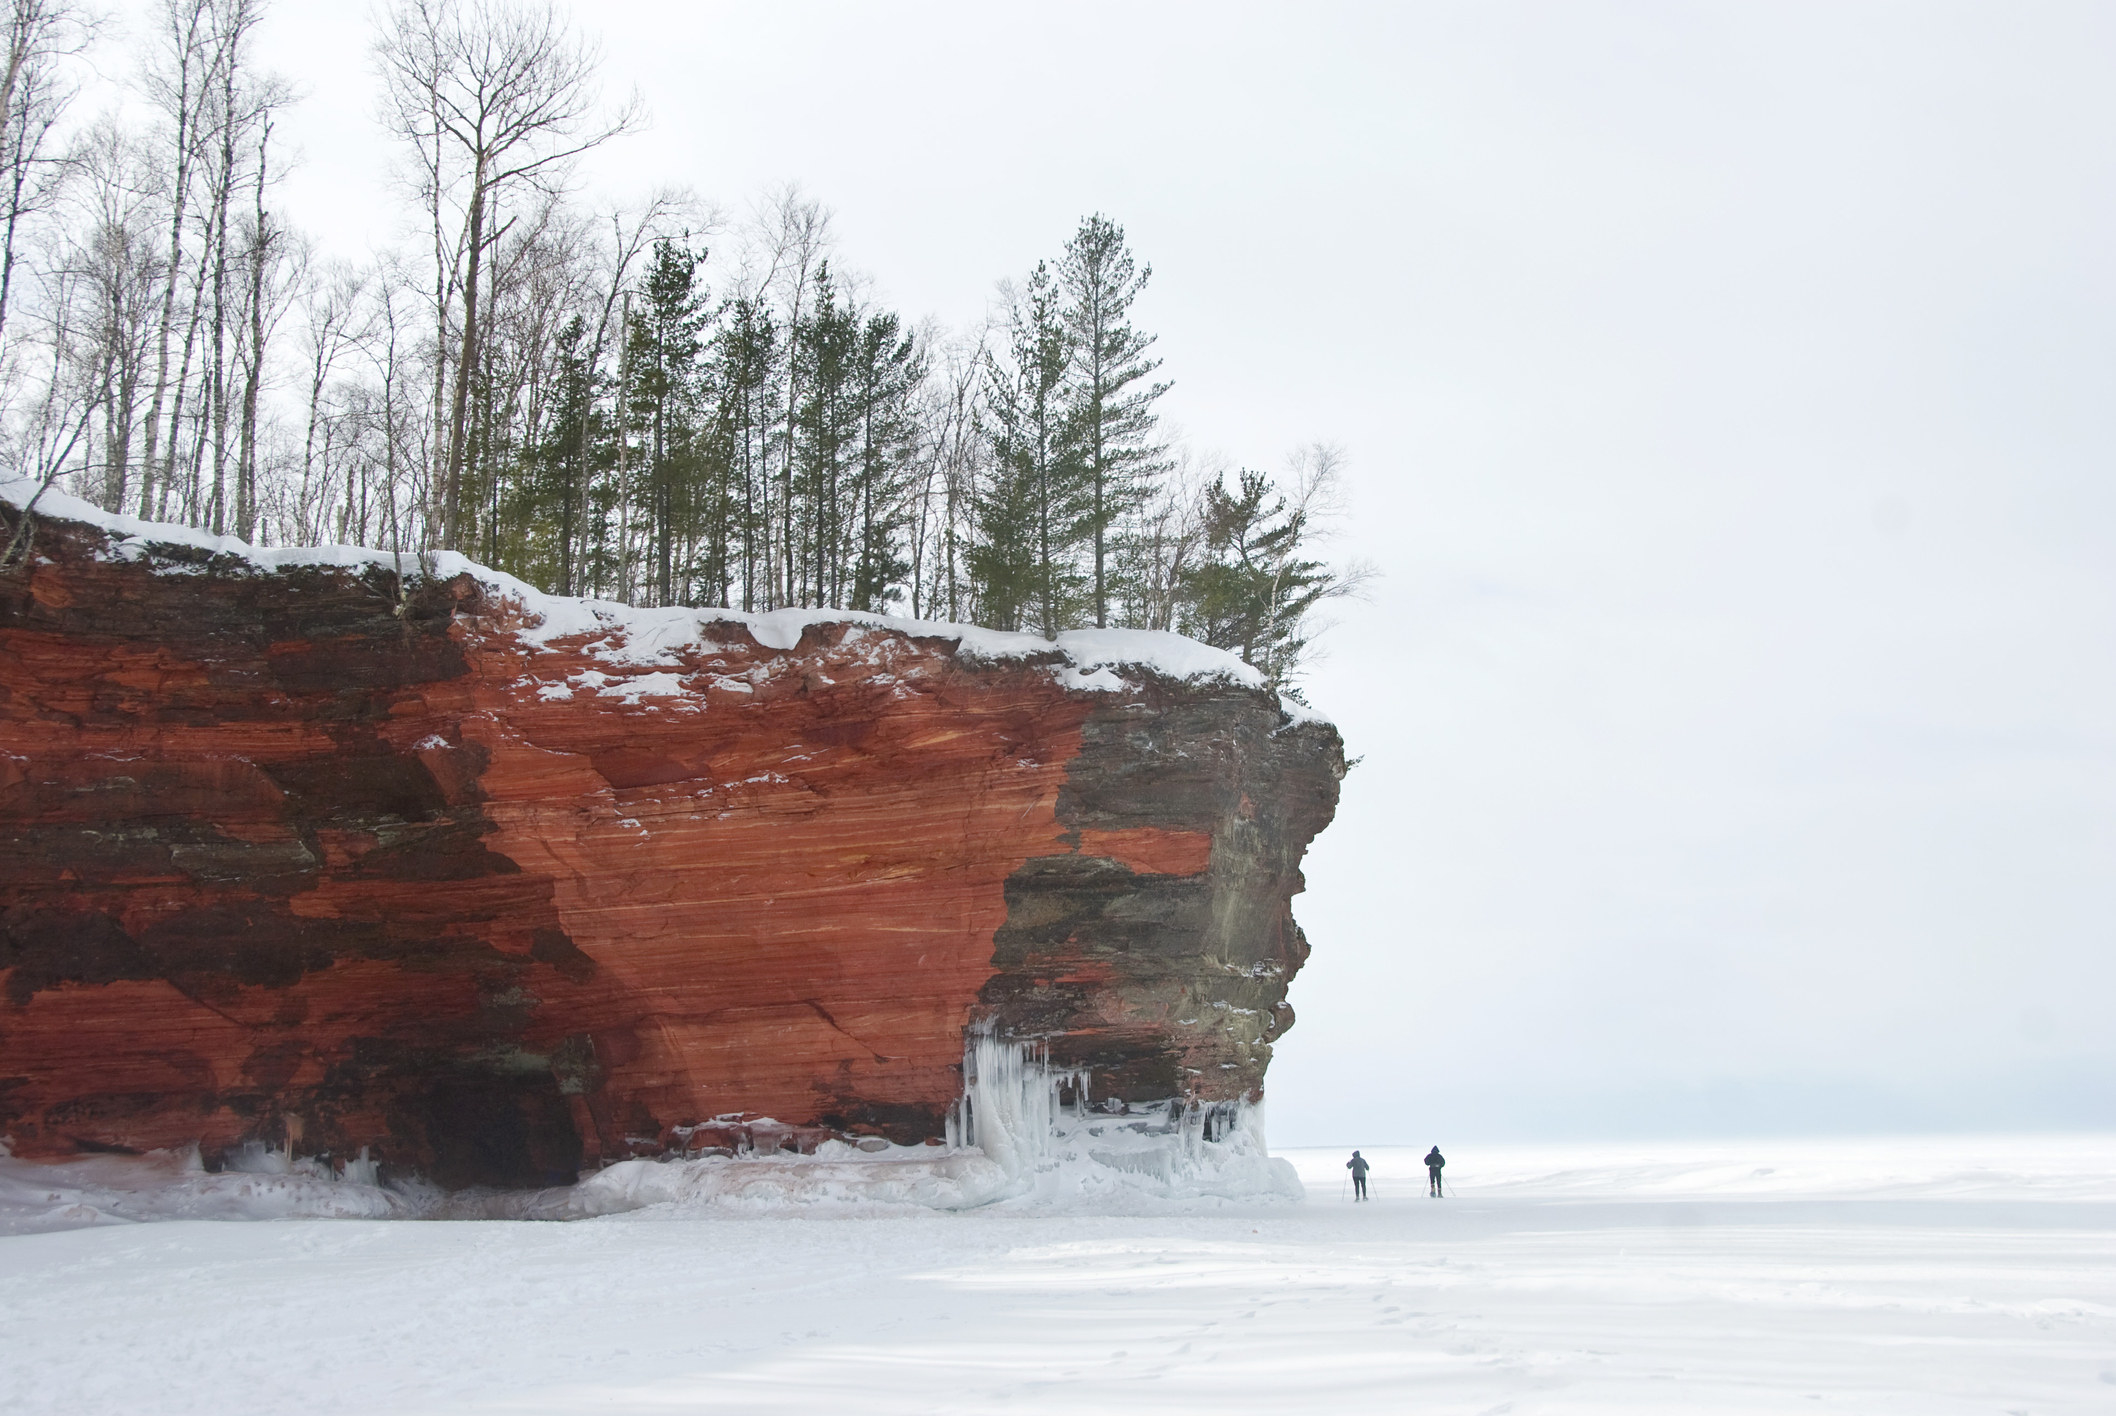 Red, sandstone cliffs jut out over a frozen lake where two small figures walk